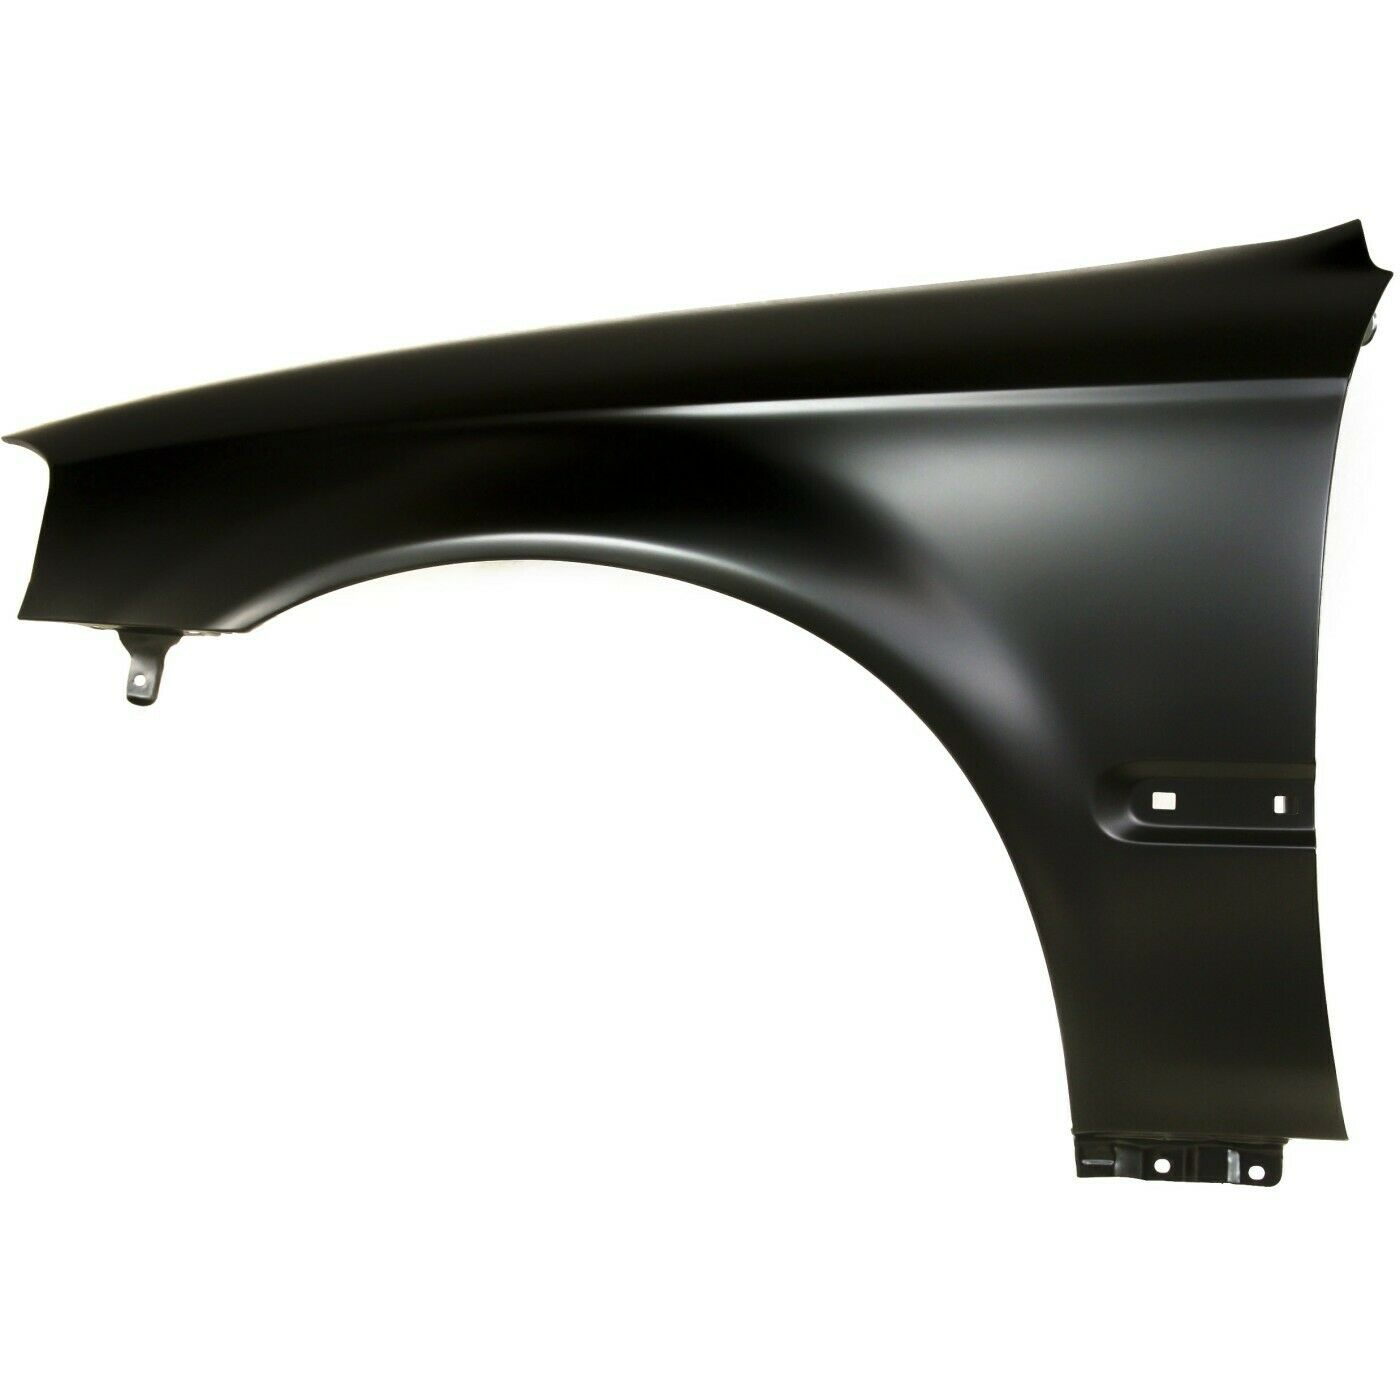 1999-2000 Honda Civic Coupe Fender